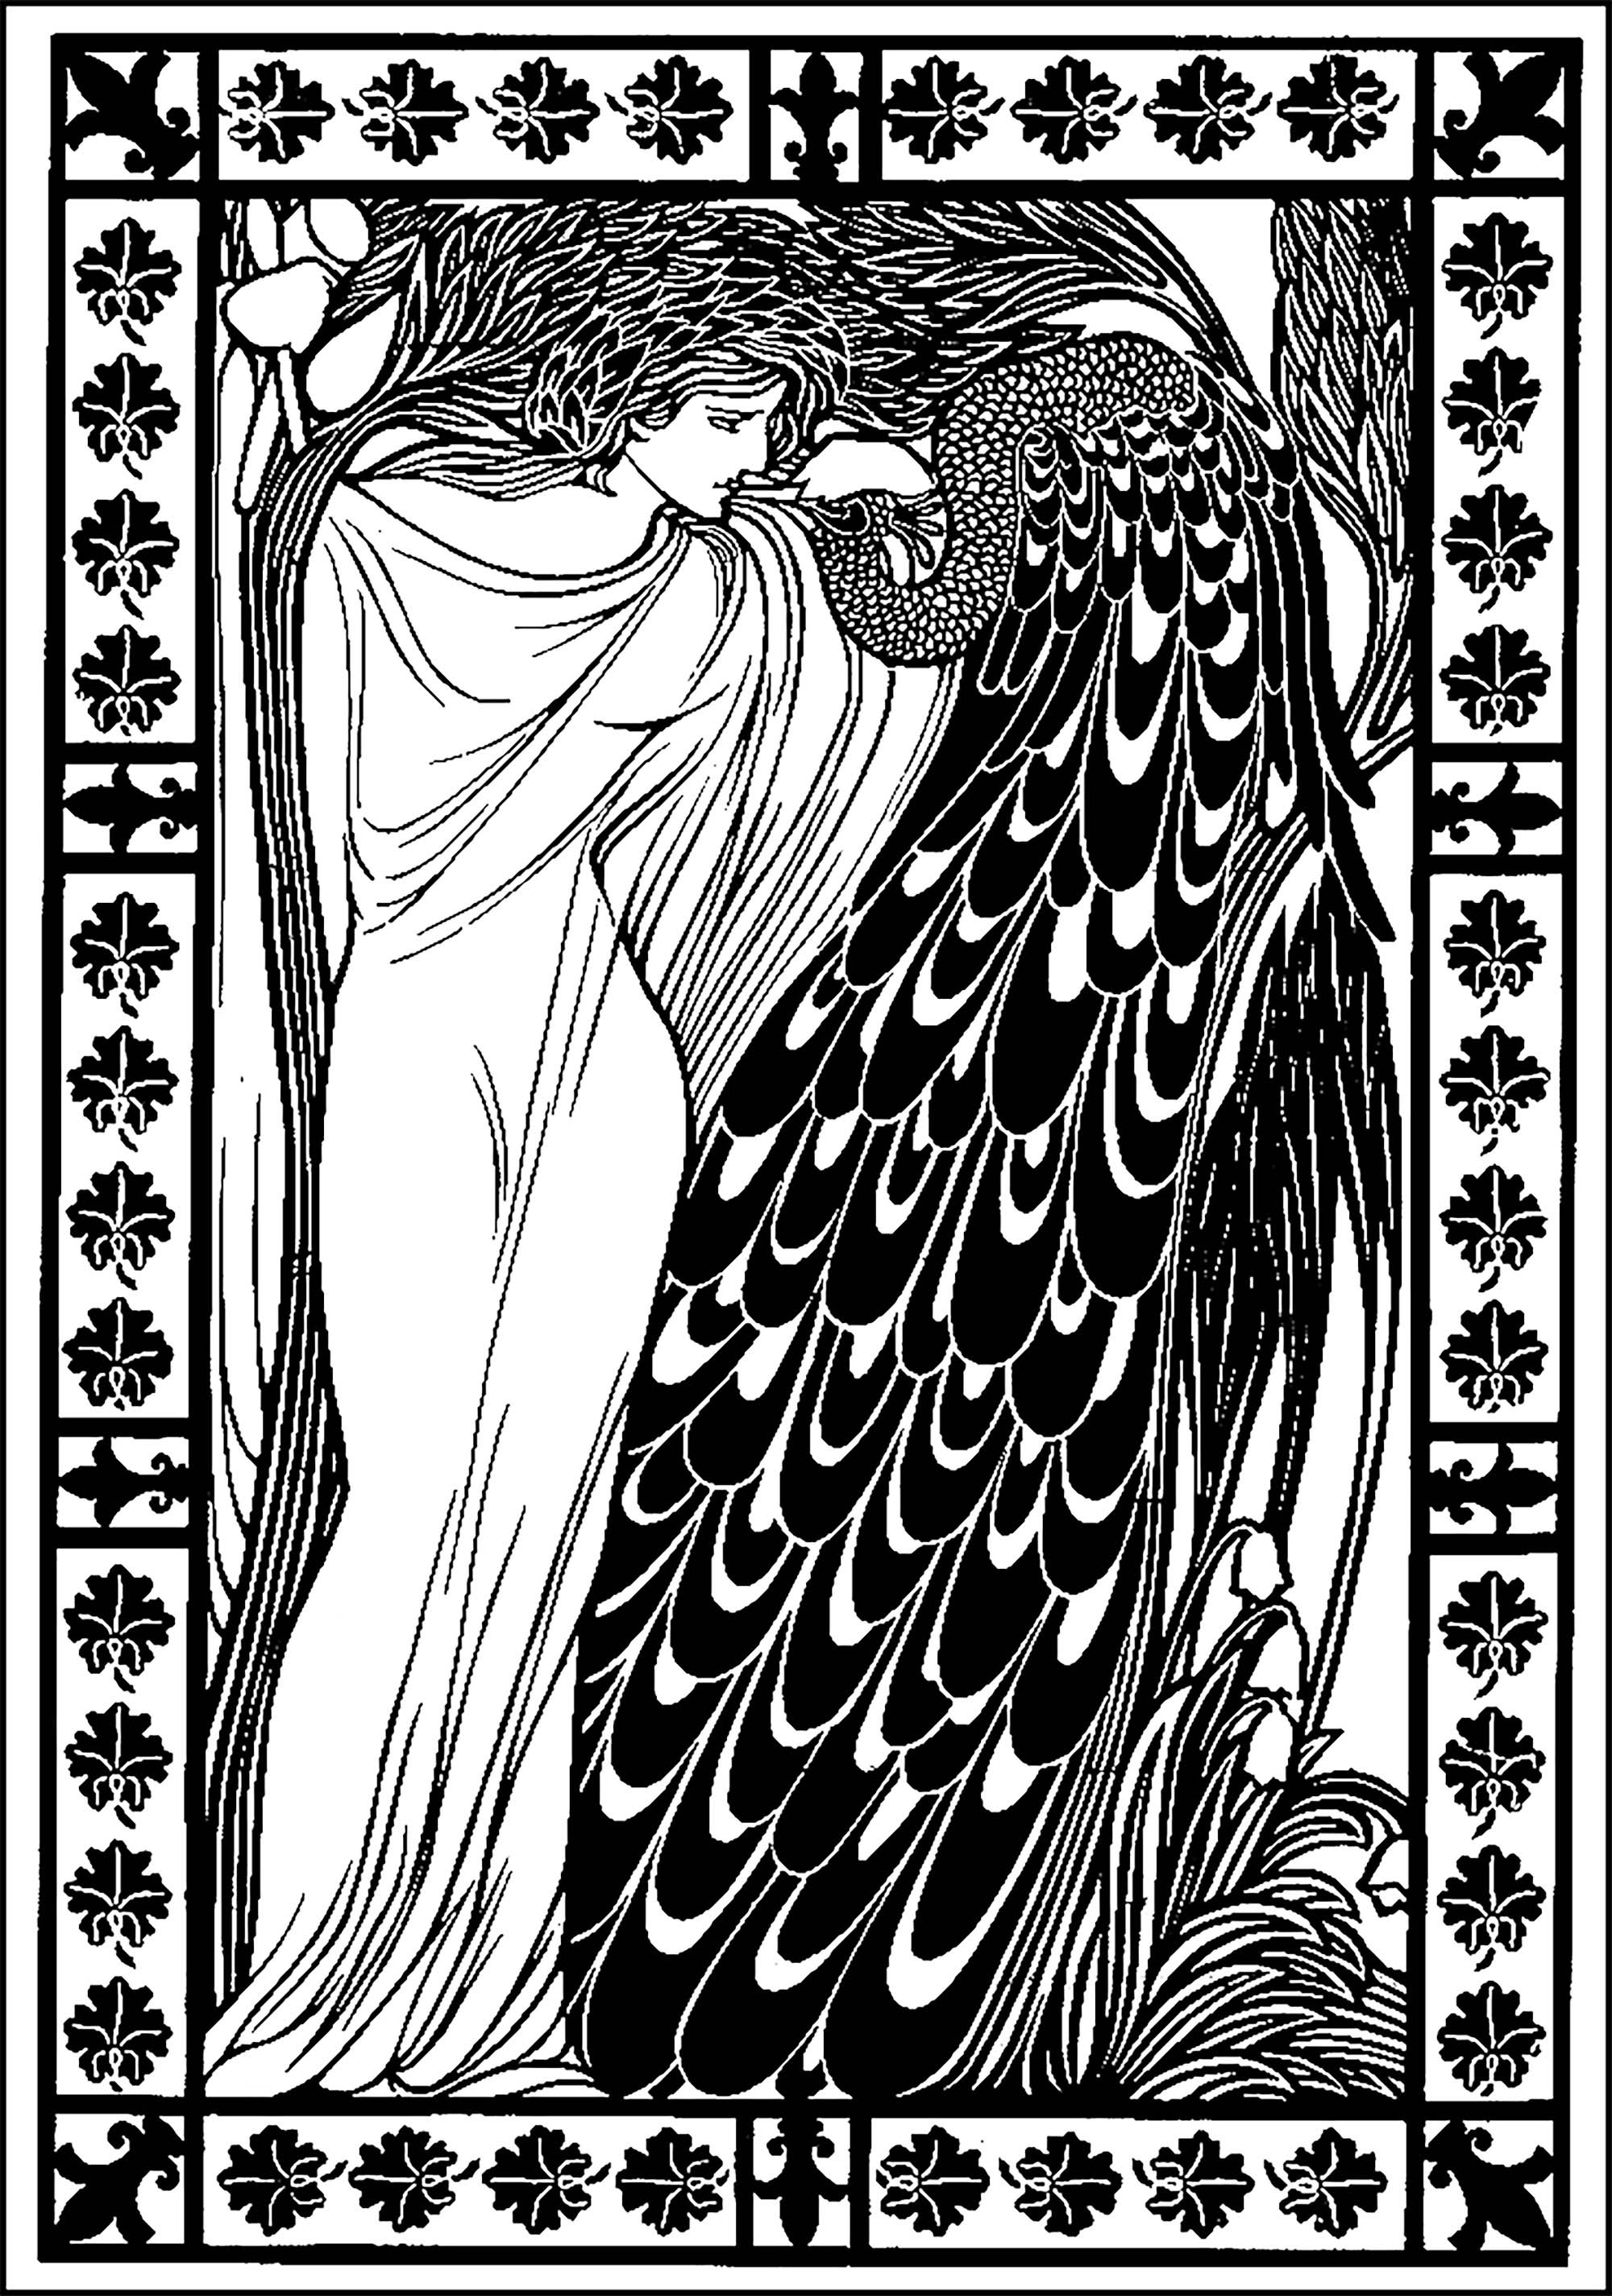 Woman and peacock : Coloring page inspired by a drawing by American artist William Bradley